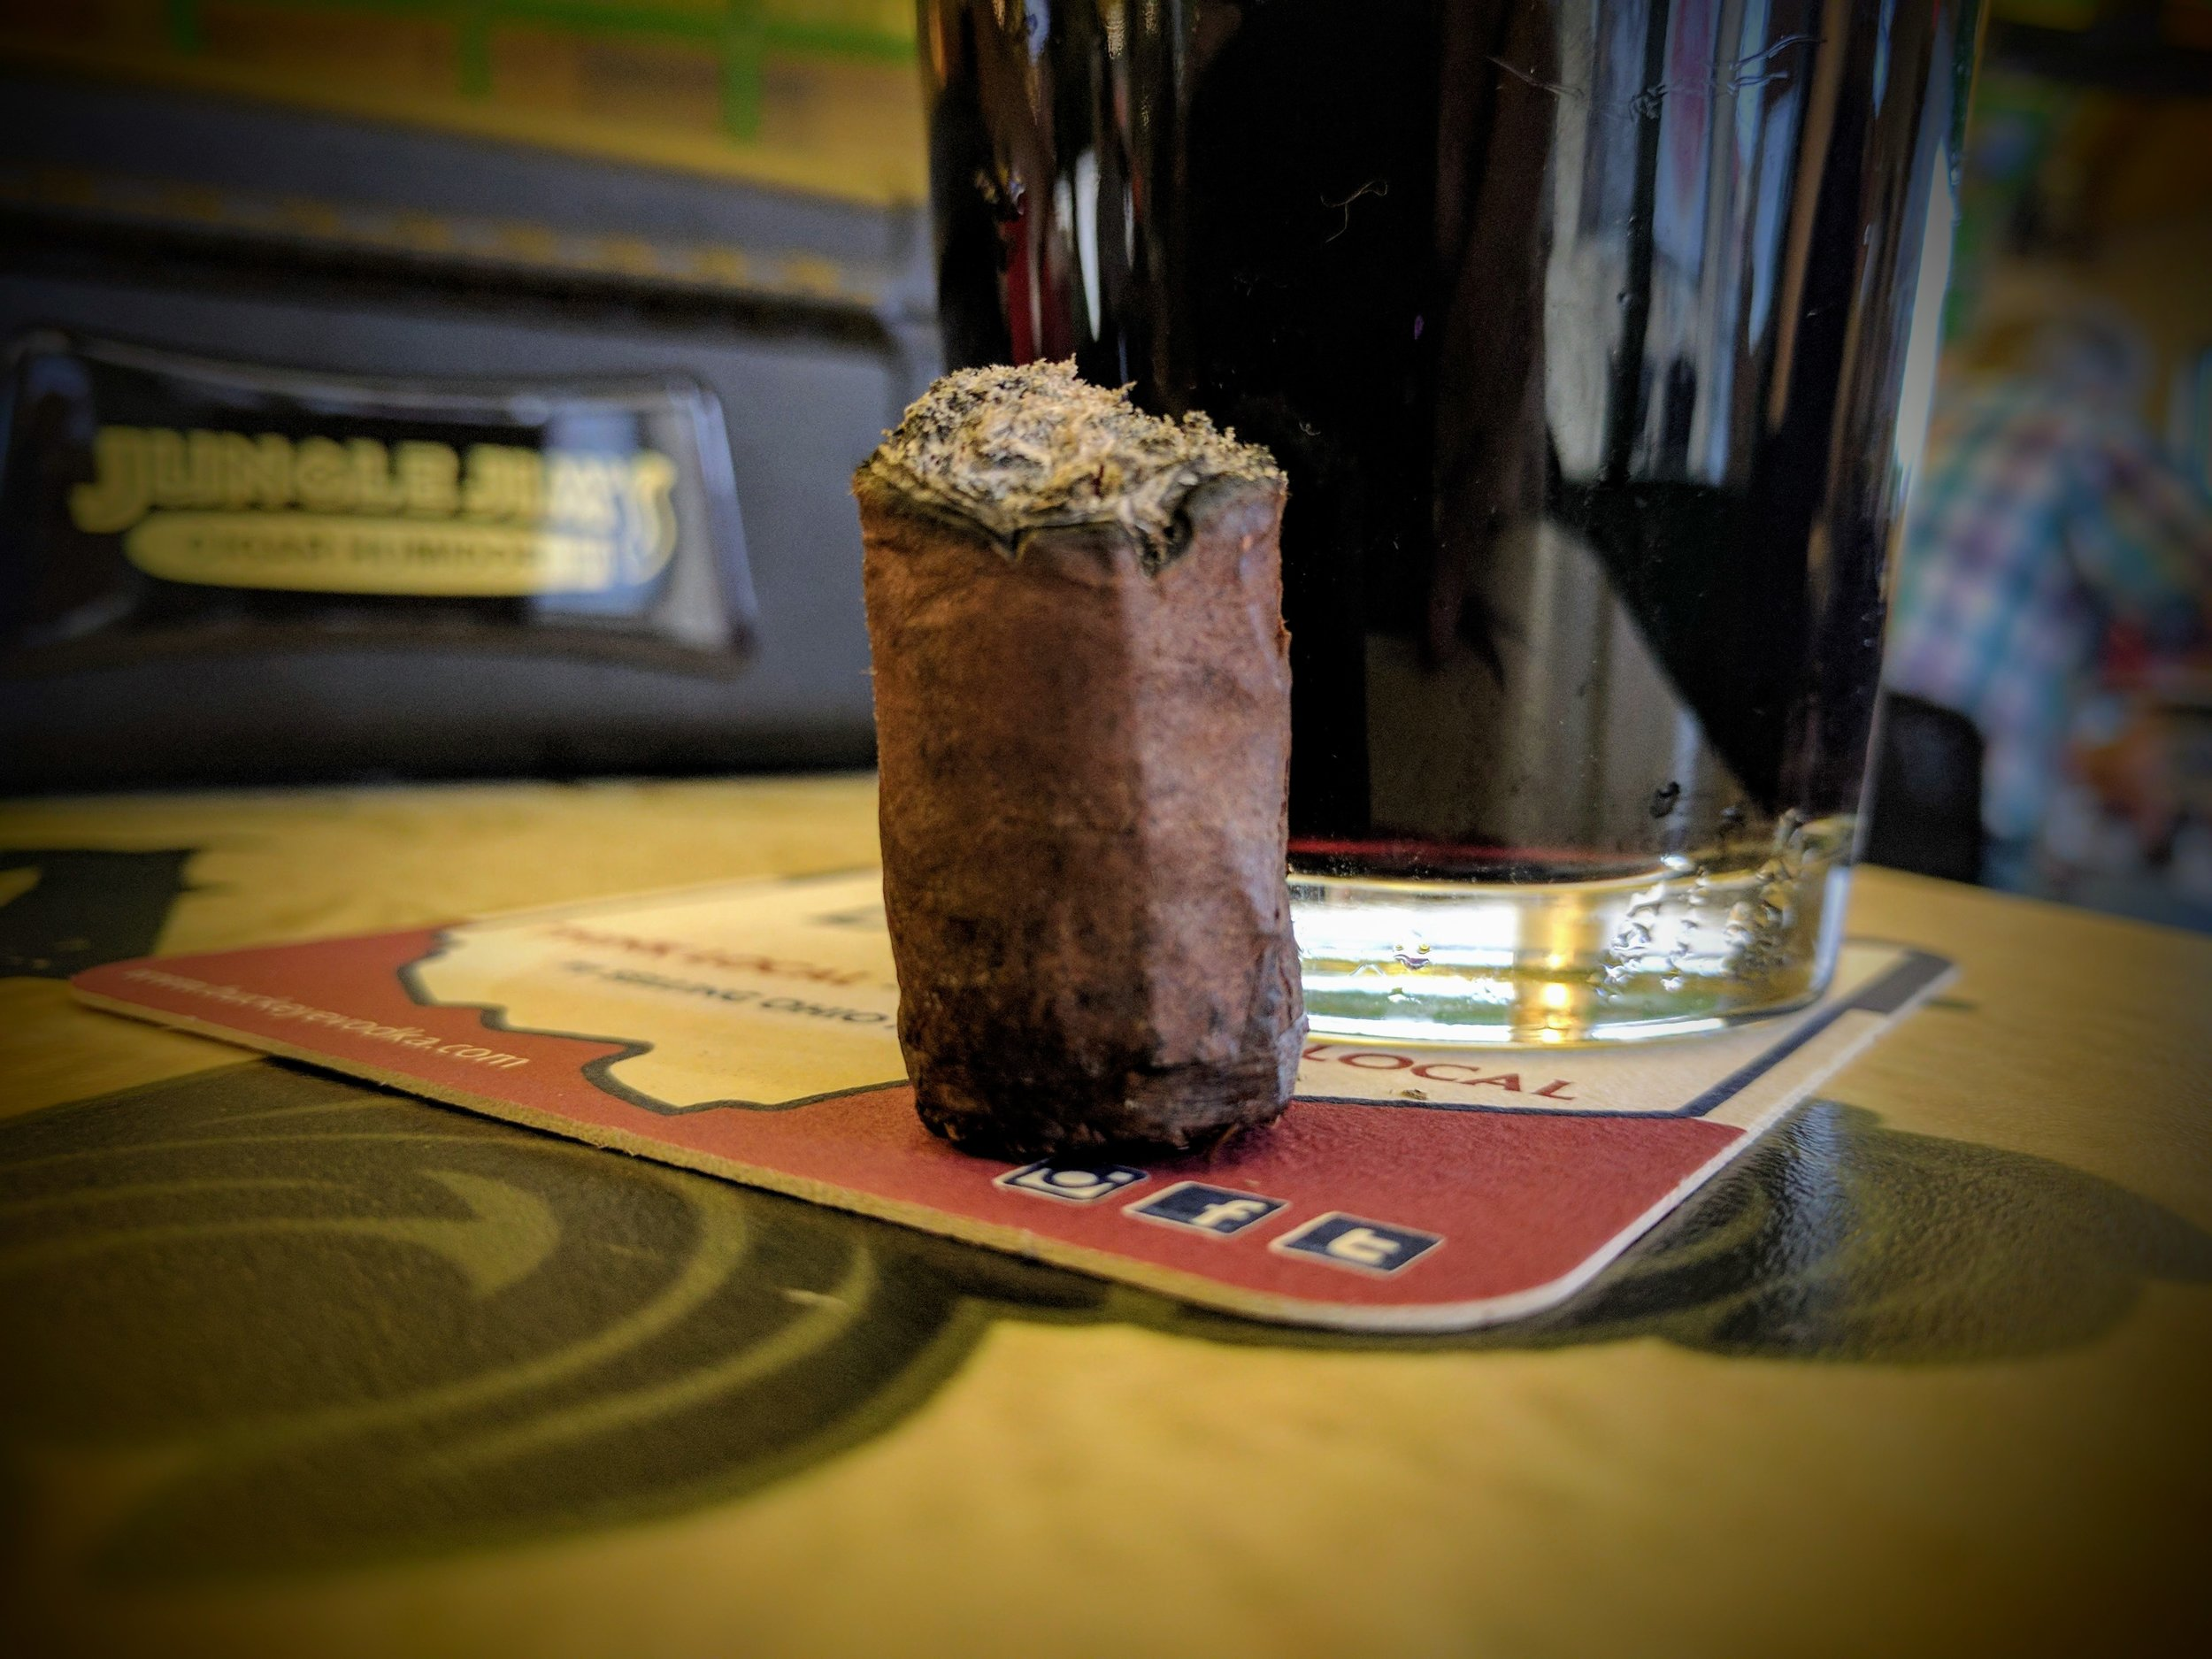 7.2 / 10 - MISSING THE porter ?  - Chocolate Porter may be a victim of its name. While the flavors progressed nicely it was hard for me to imagine them as a porter. The progression seemed to peak around the first half of the first third as well - which made the remainder of the cigar kind of one note where you're trying to detect the subtle nuances of flavors. Both the sweet and savory flavors were good and unique but overall not as impressive and some of Ezra Zion's other cigars.To me, this is a great daily smoke - but the rarity and price are a HINDRANCE to that notion.